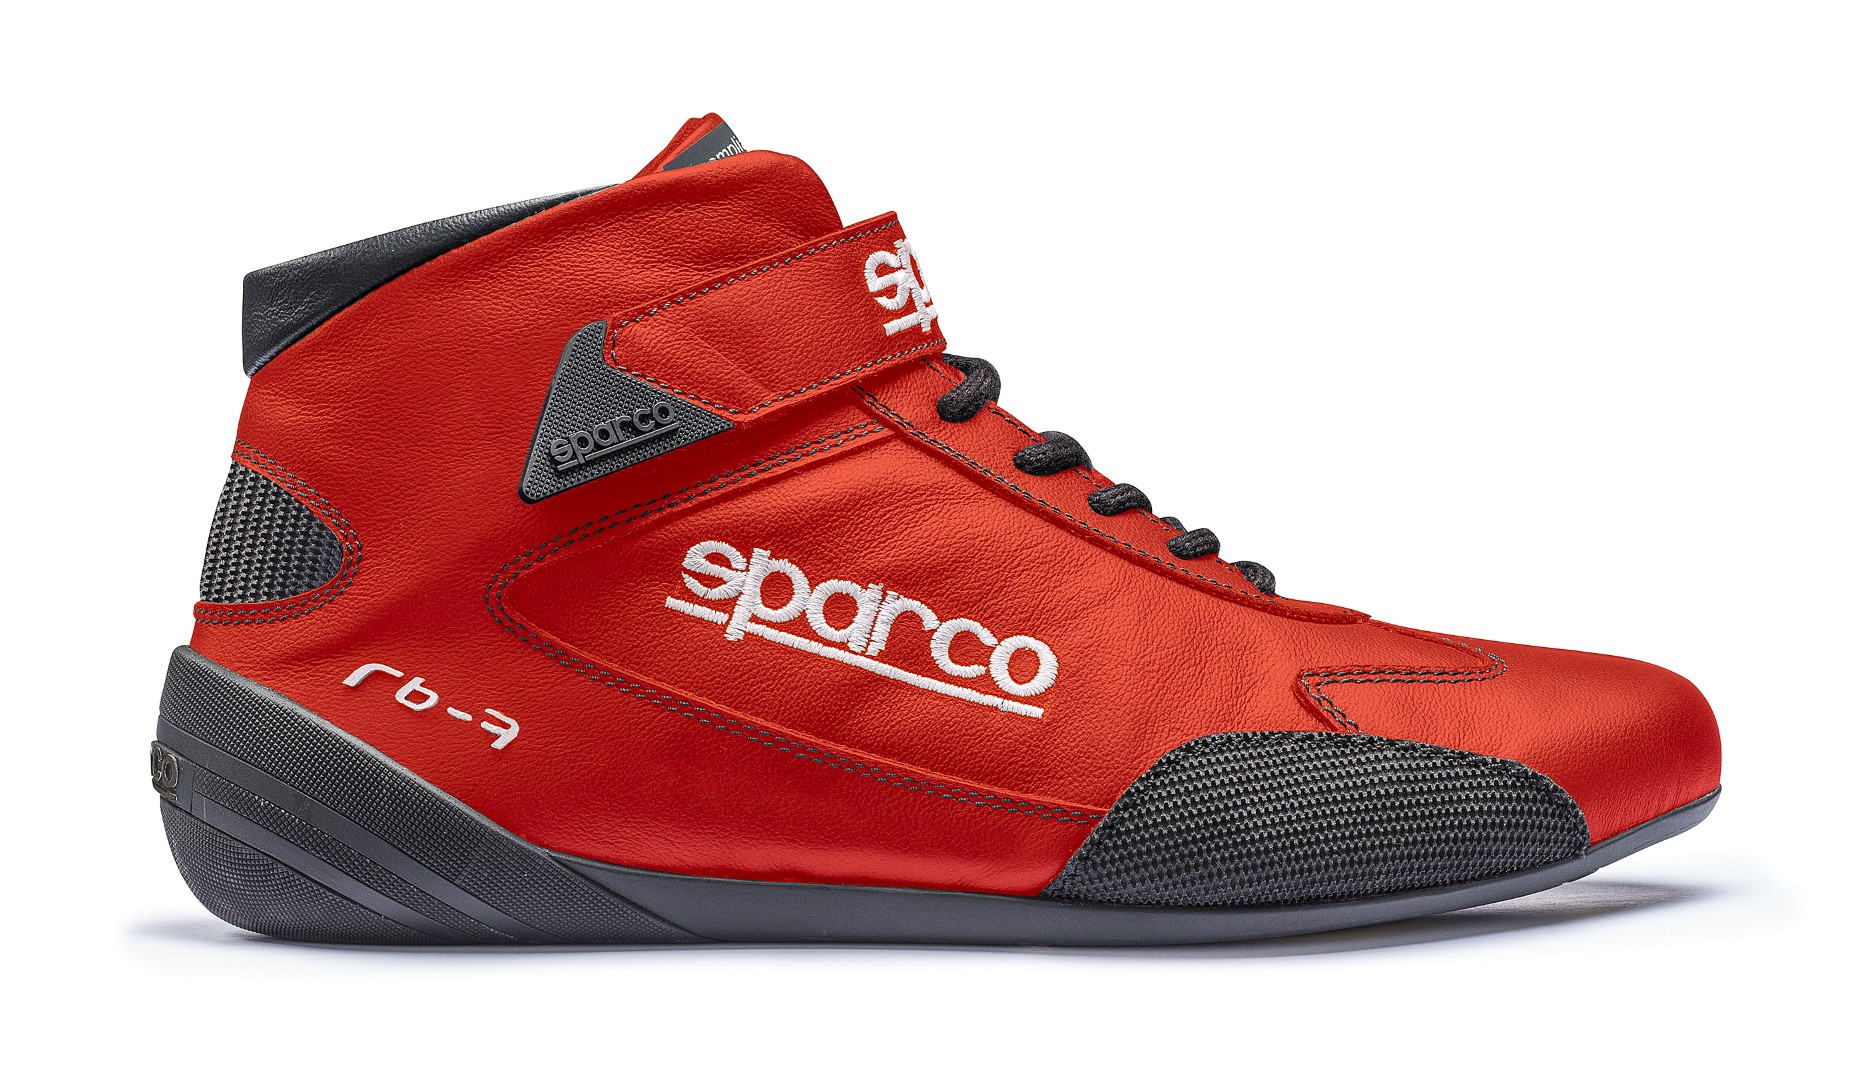 Sparco Red Cross RB-7 Driving Shoes EU 39 | US 5 - 00122439RS